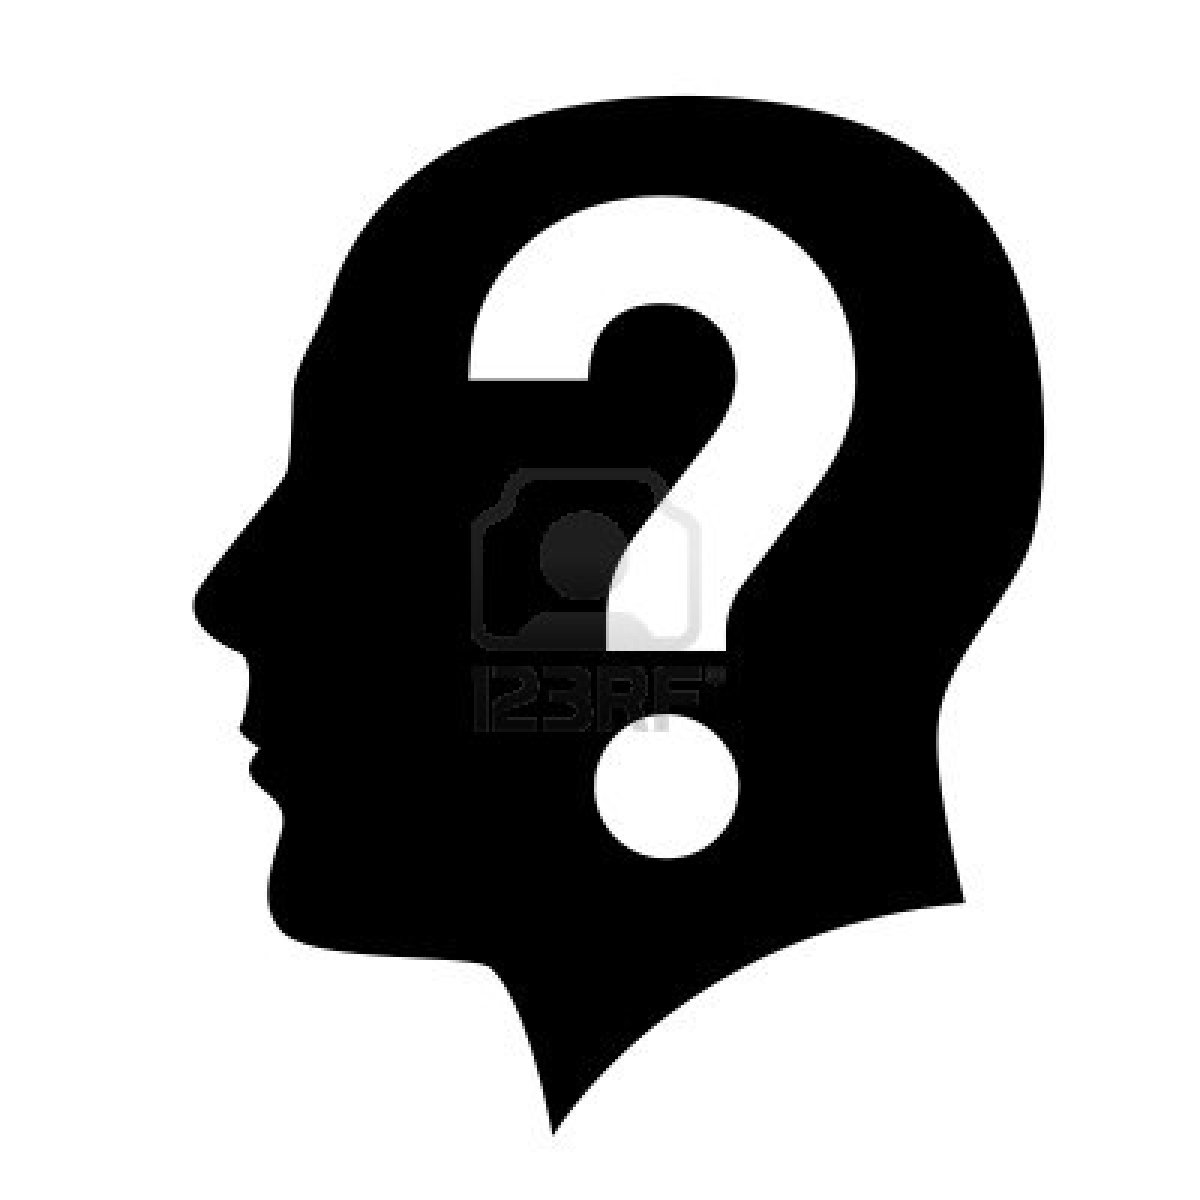 15312895-human-head-with-question-mark-symbol-on-white